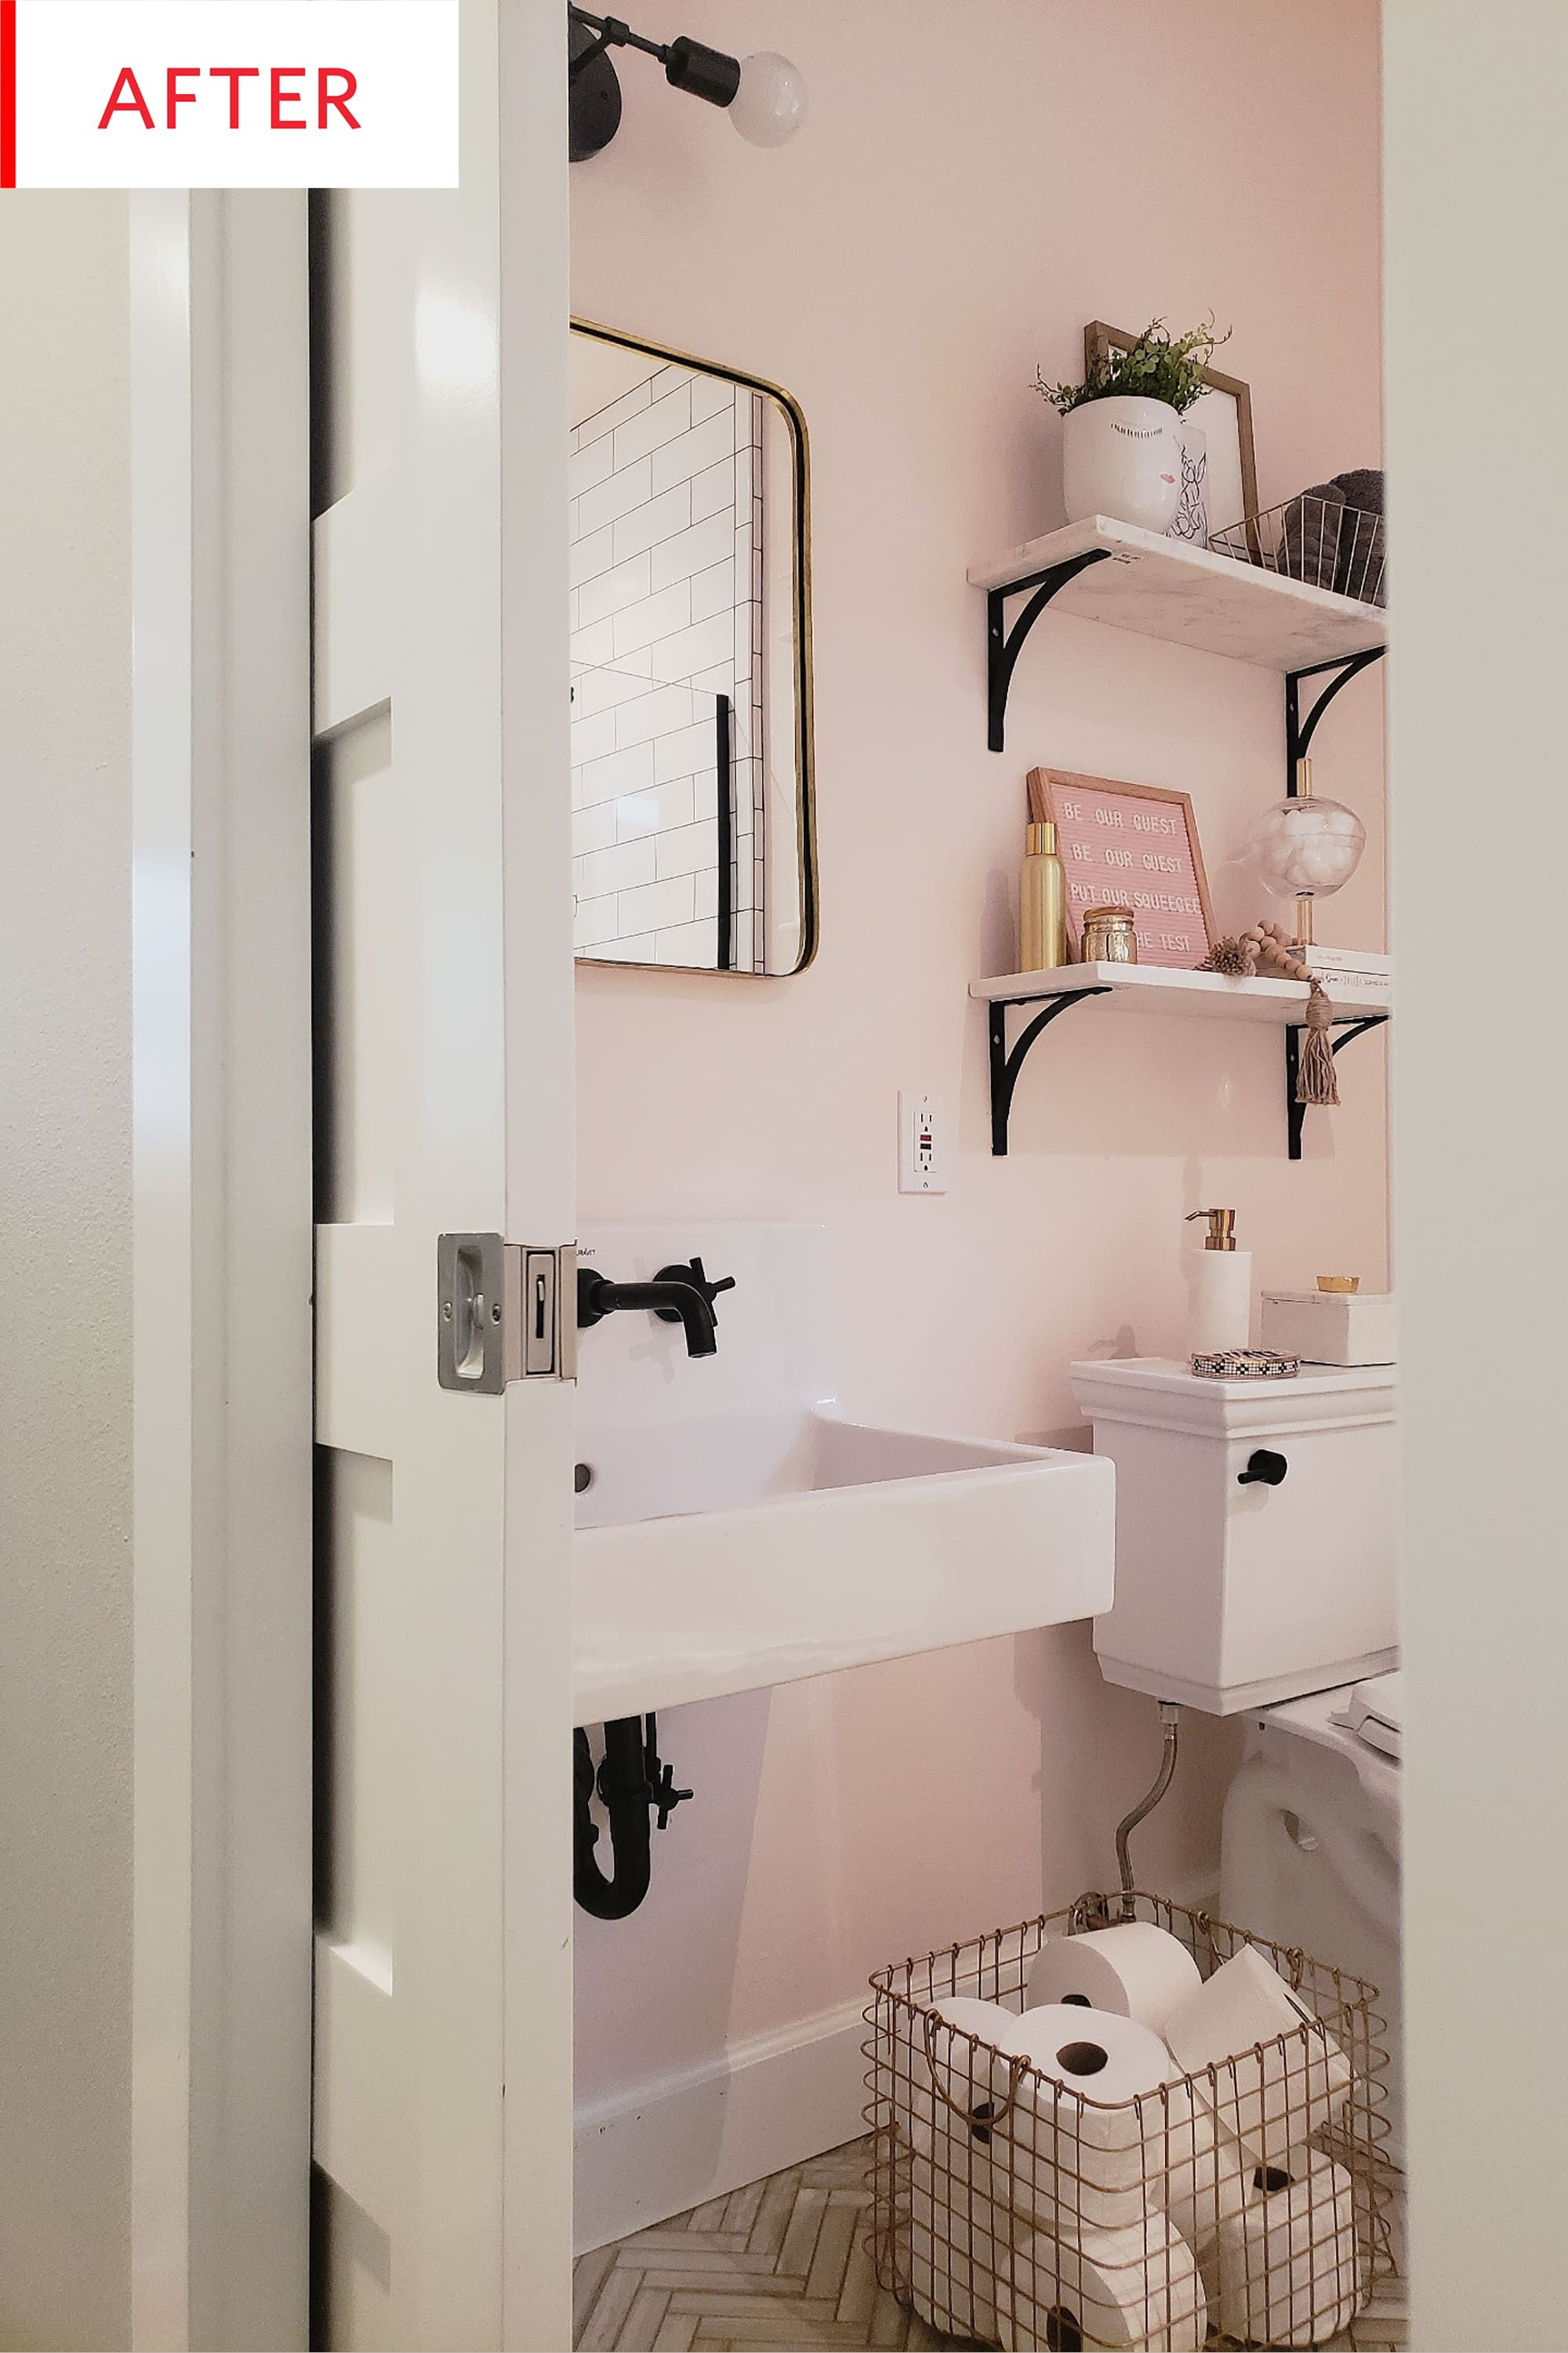 Photo of Before and After: This Tiny Bathroom Redo Triggers Some Major Cute Aggression